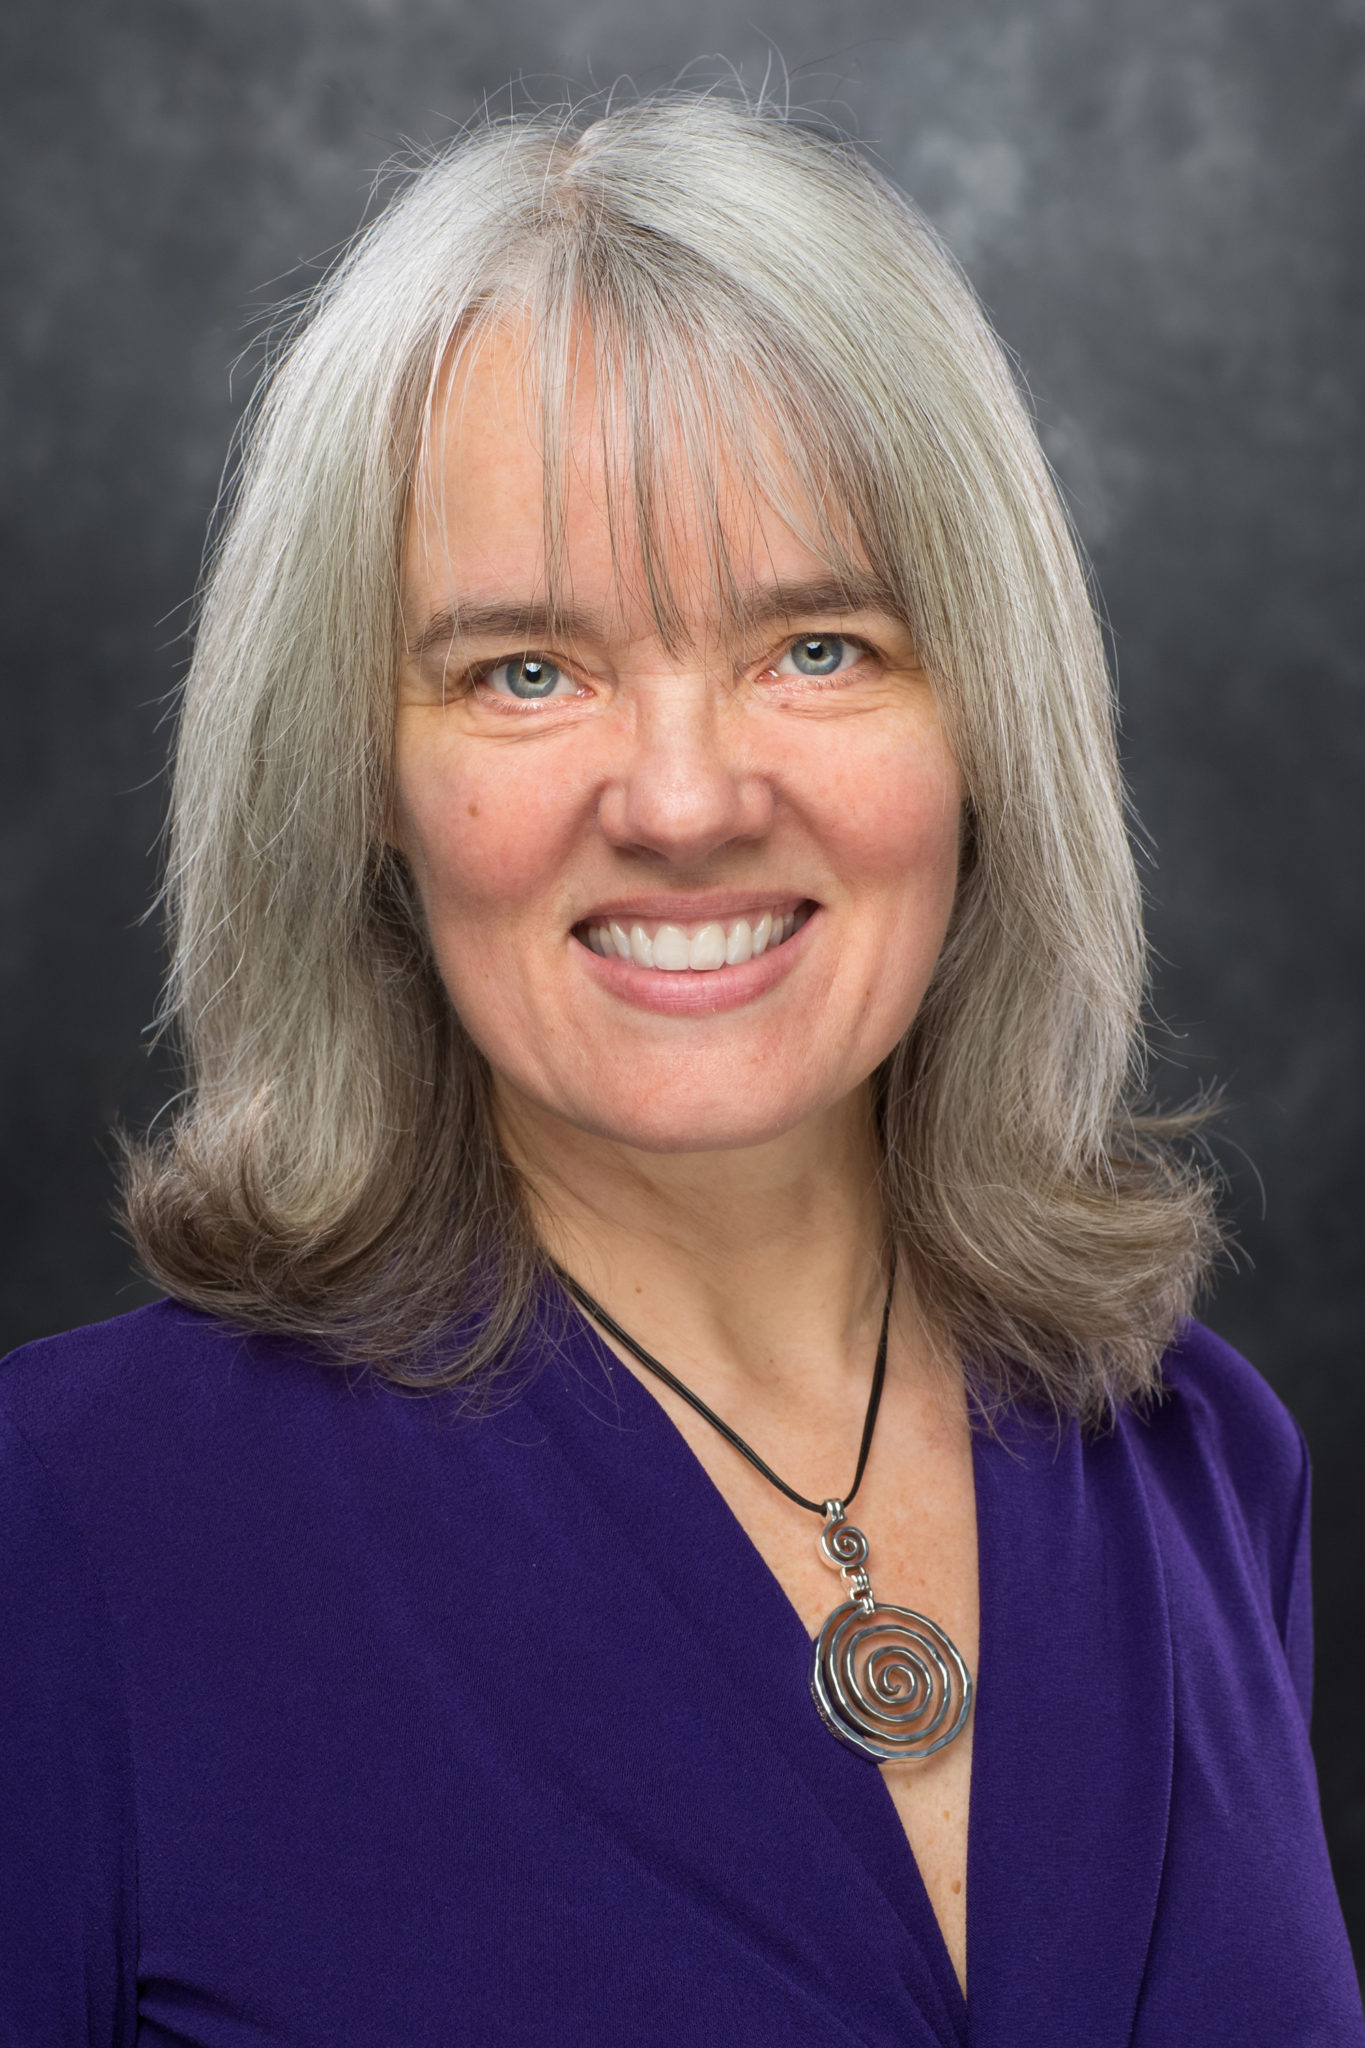 Janet Newell